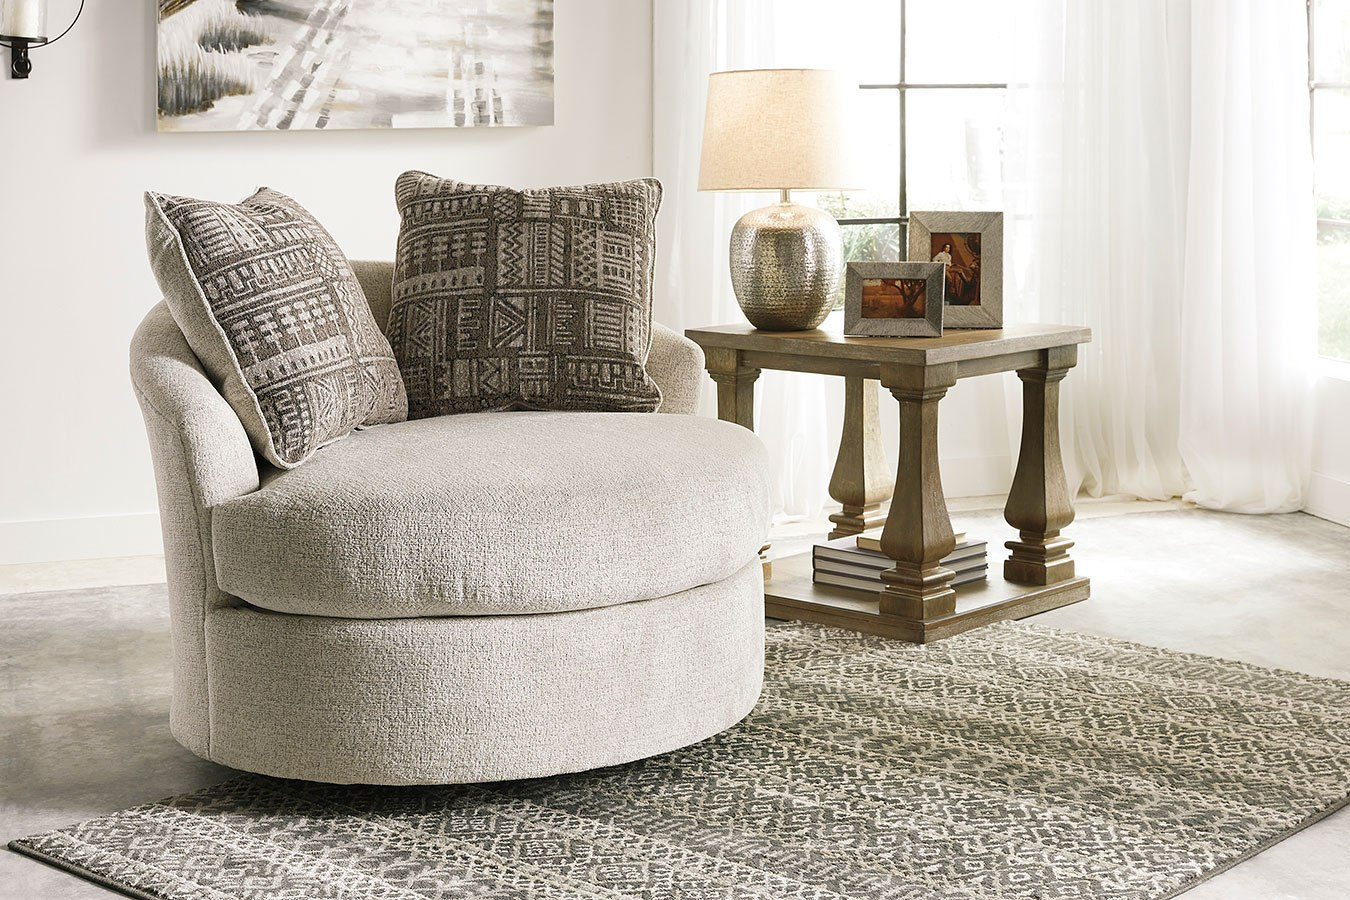 Soletren Stone Living Room Set By Signature Design By Ashley